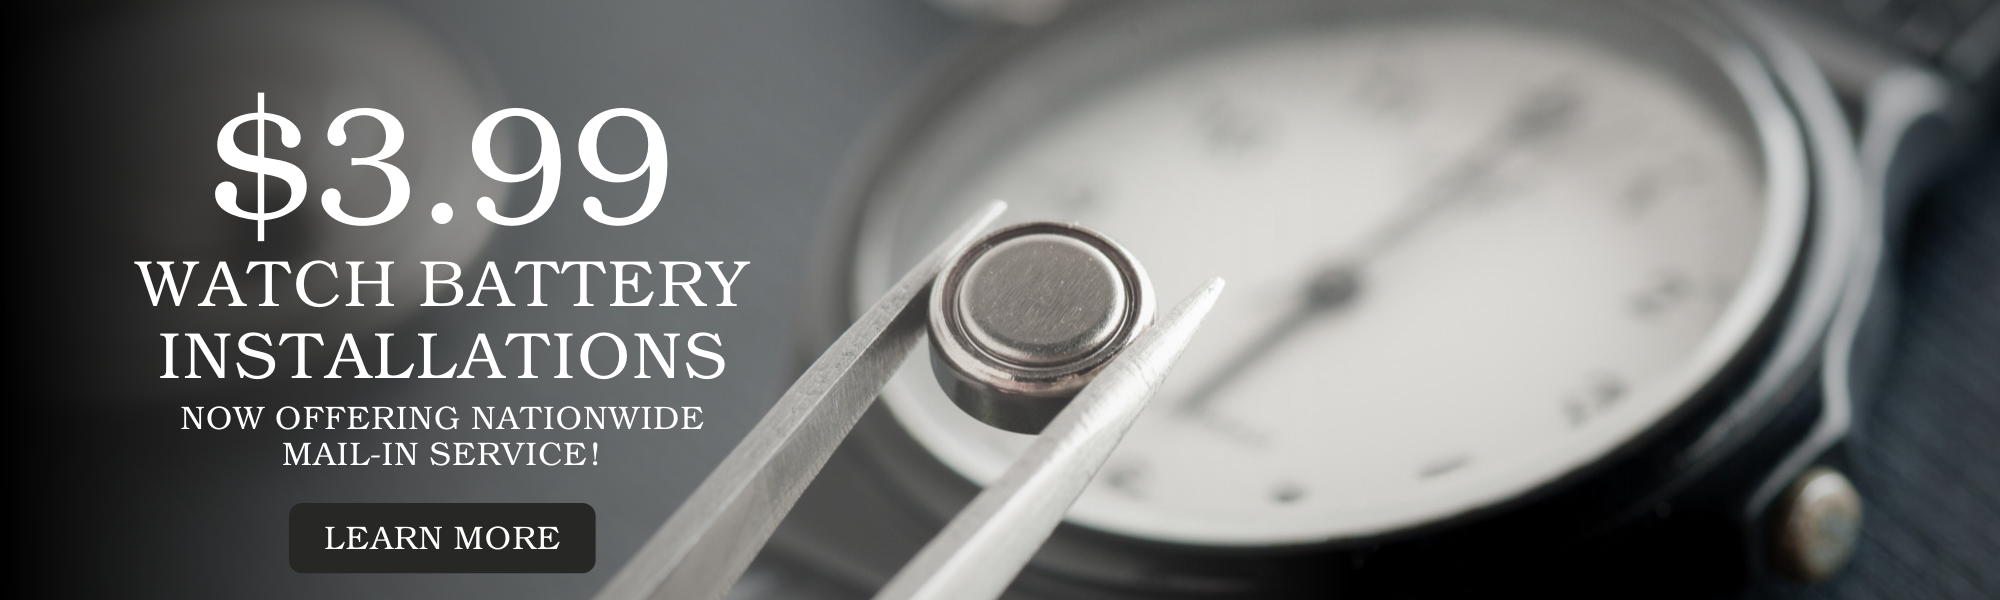 Watch Battery Installations In-Store and Online